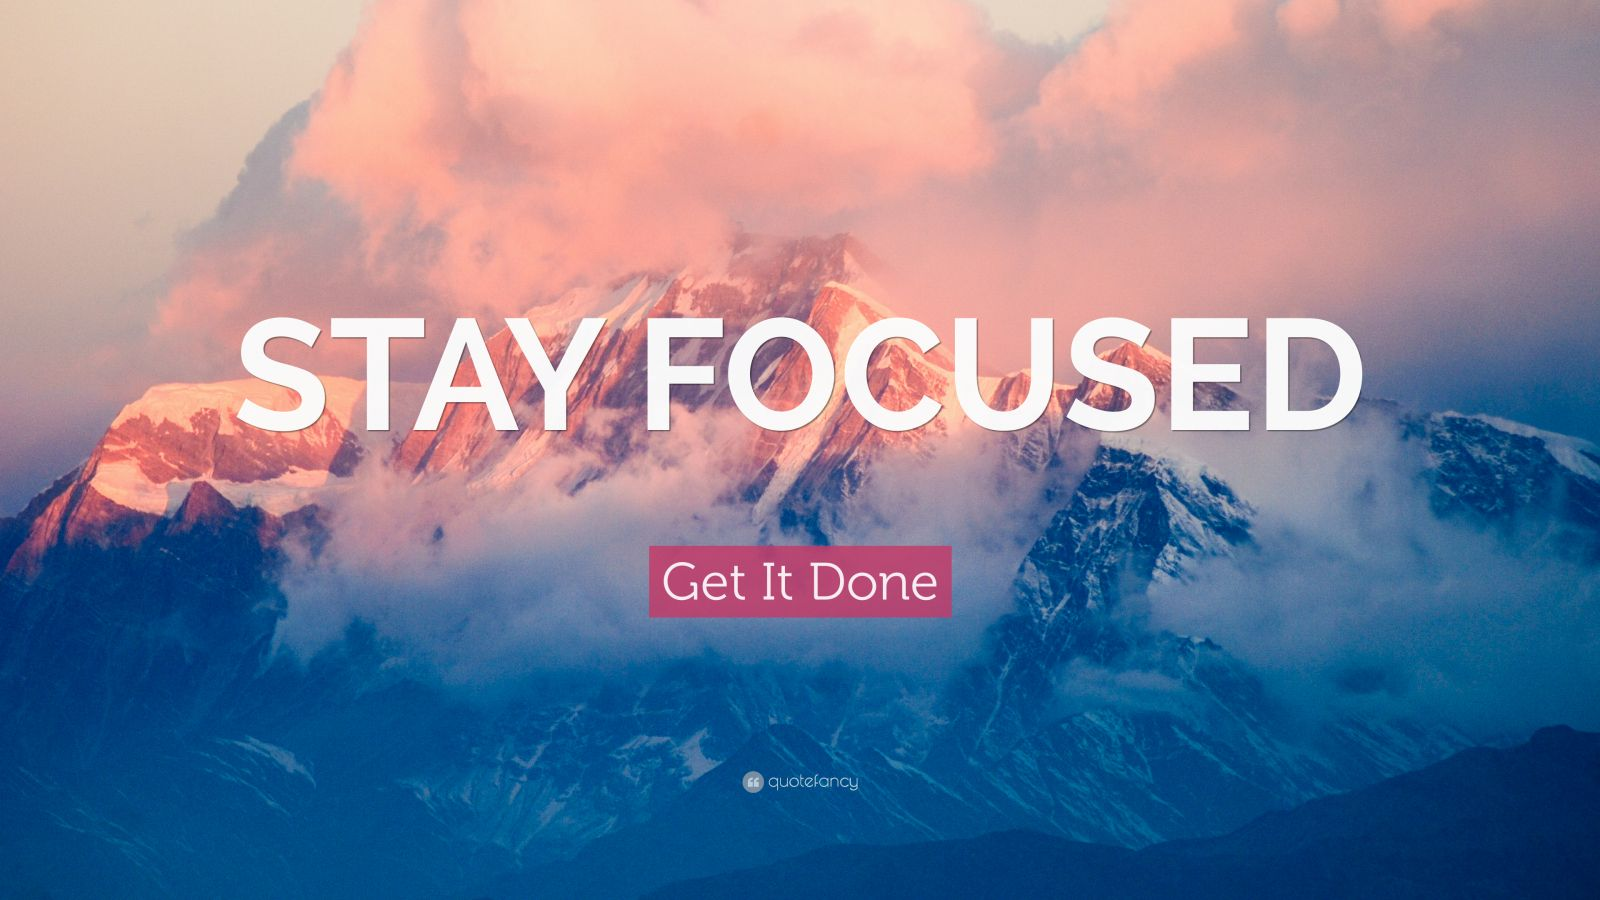 Wallpaper Quotes About Time Get It Done Quote Stay Focused 20 Wallpapers Quotefancy